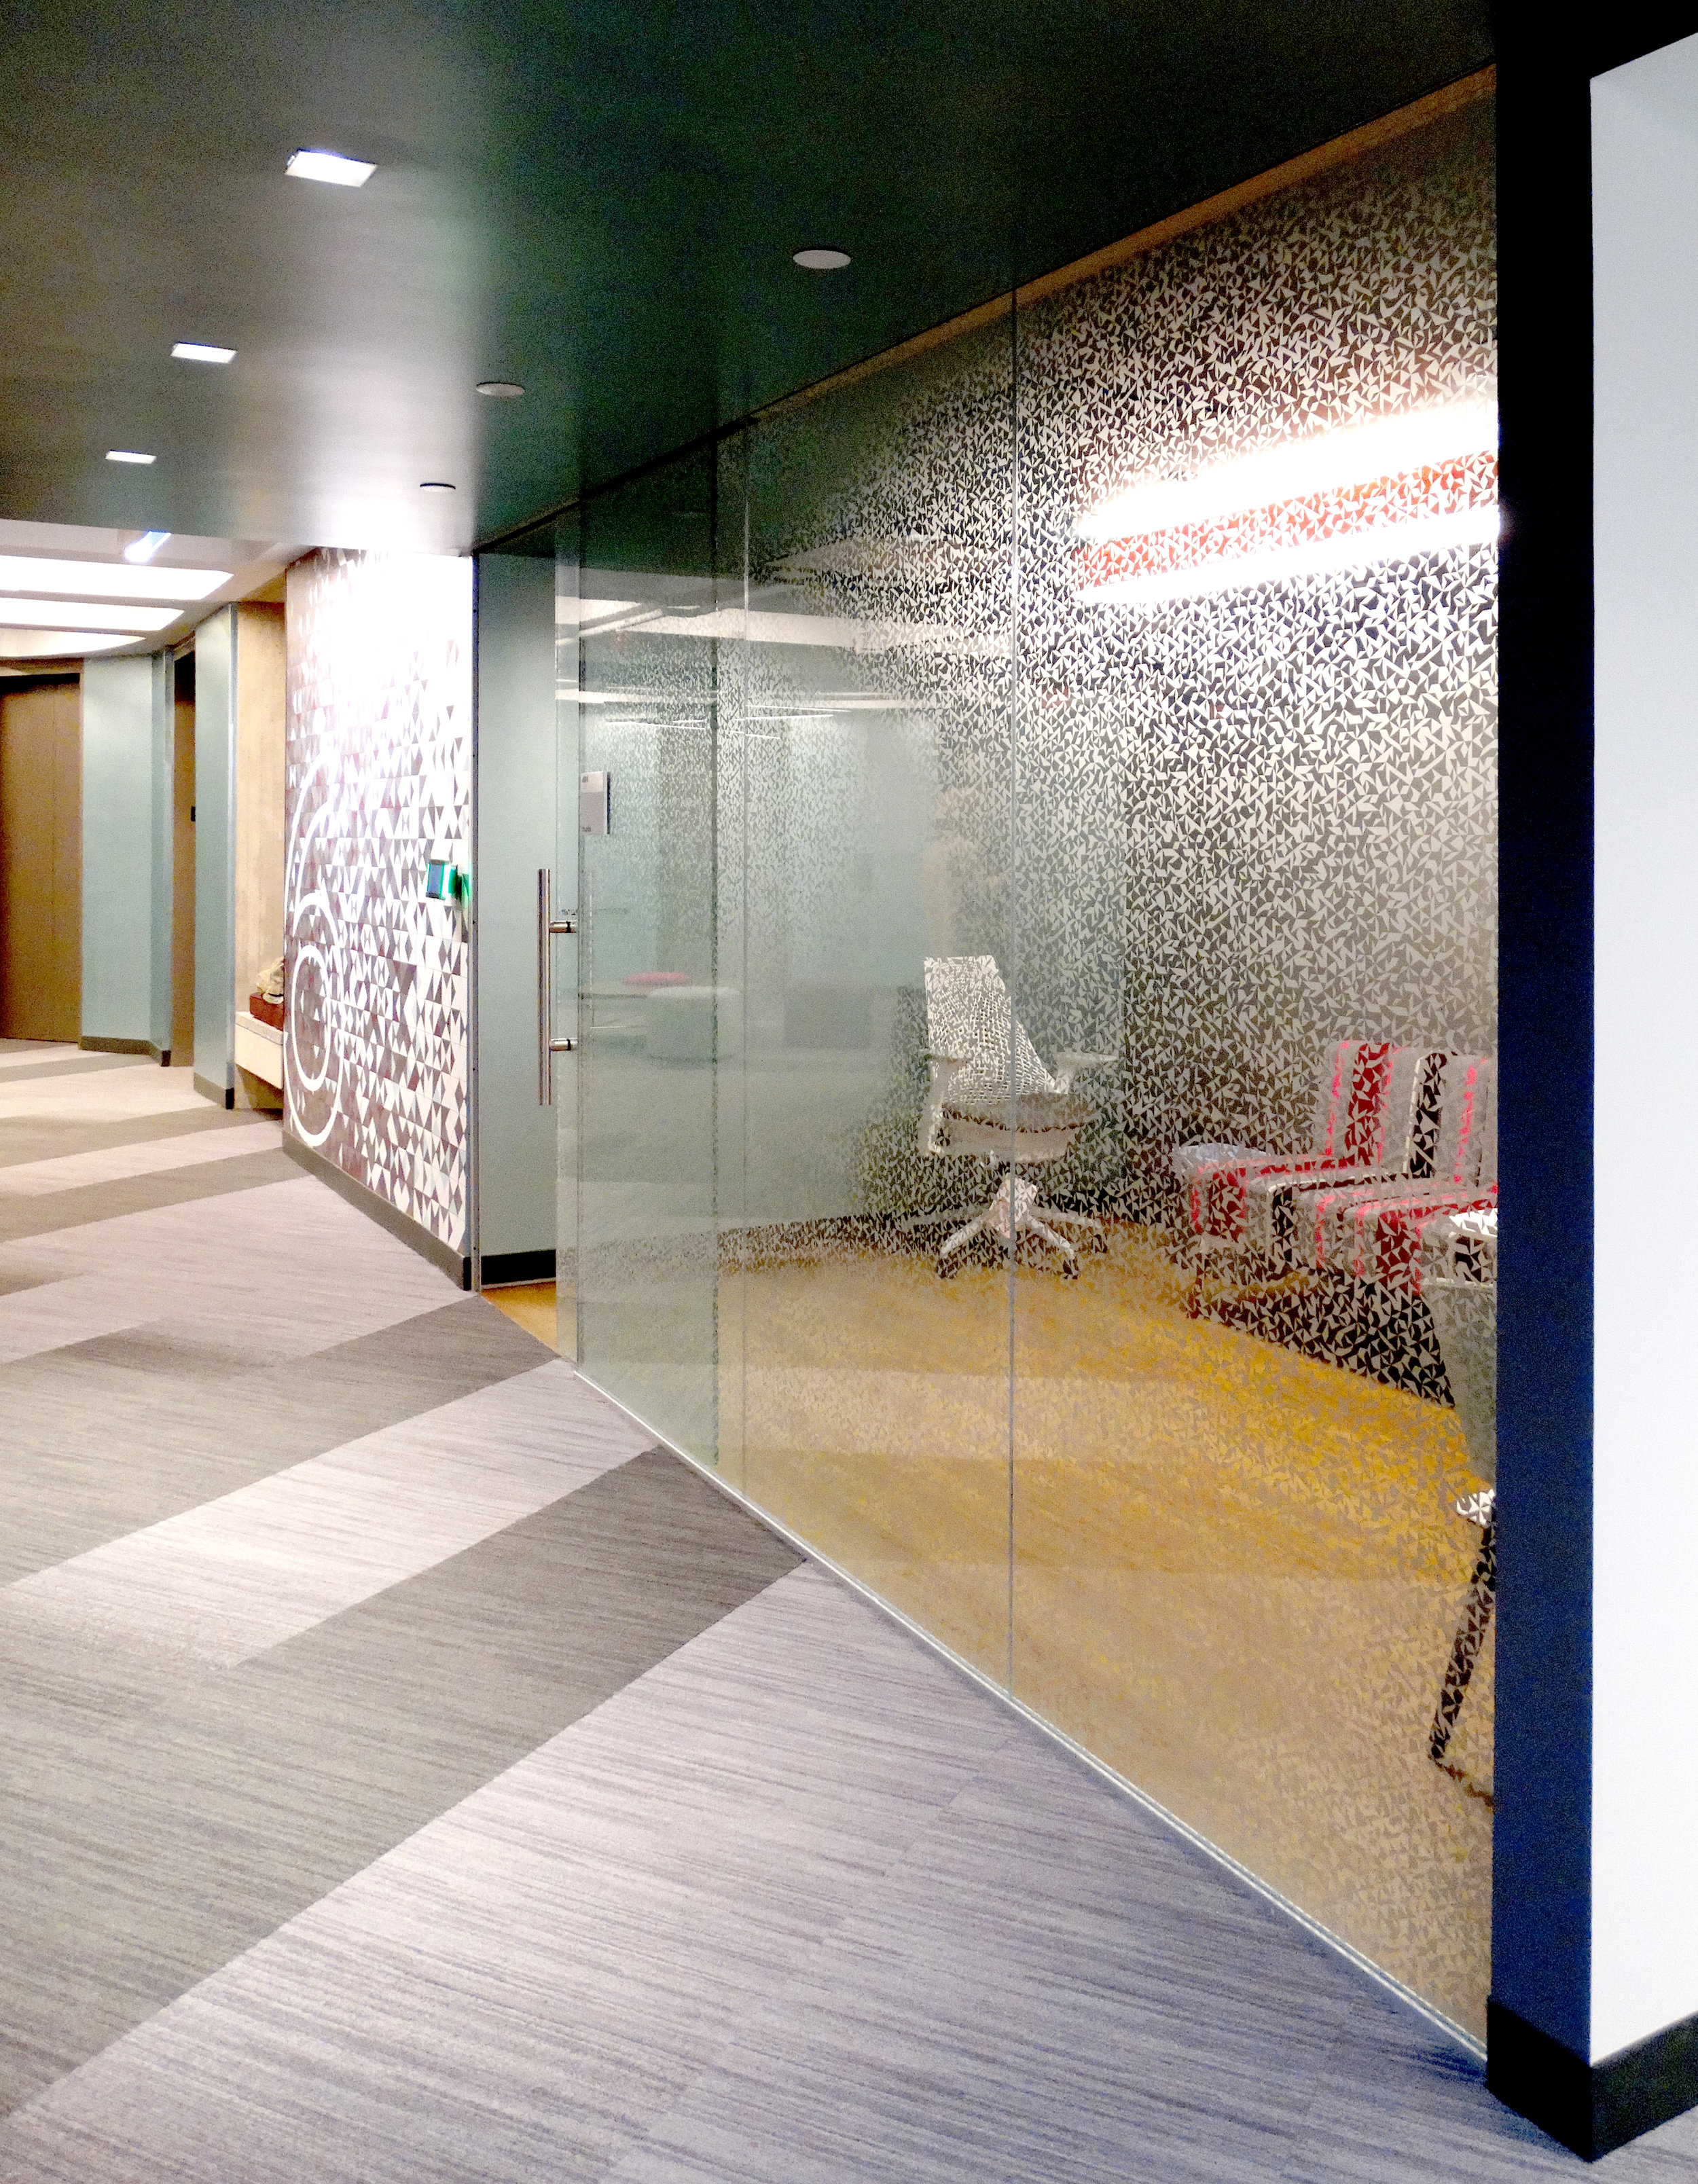 Illume Frameless Glass Etched Pattern Wall - Spaceworks AI.jpg